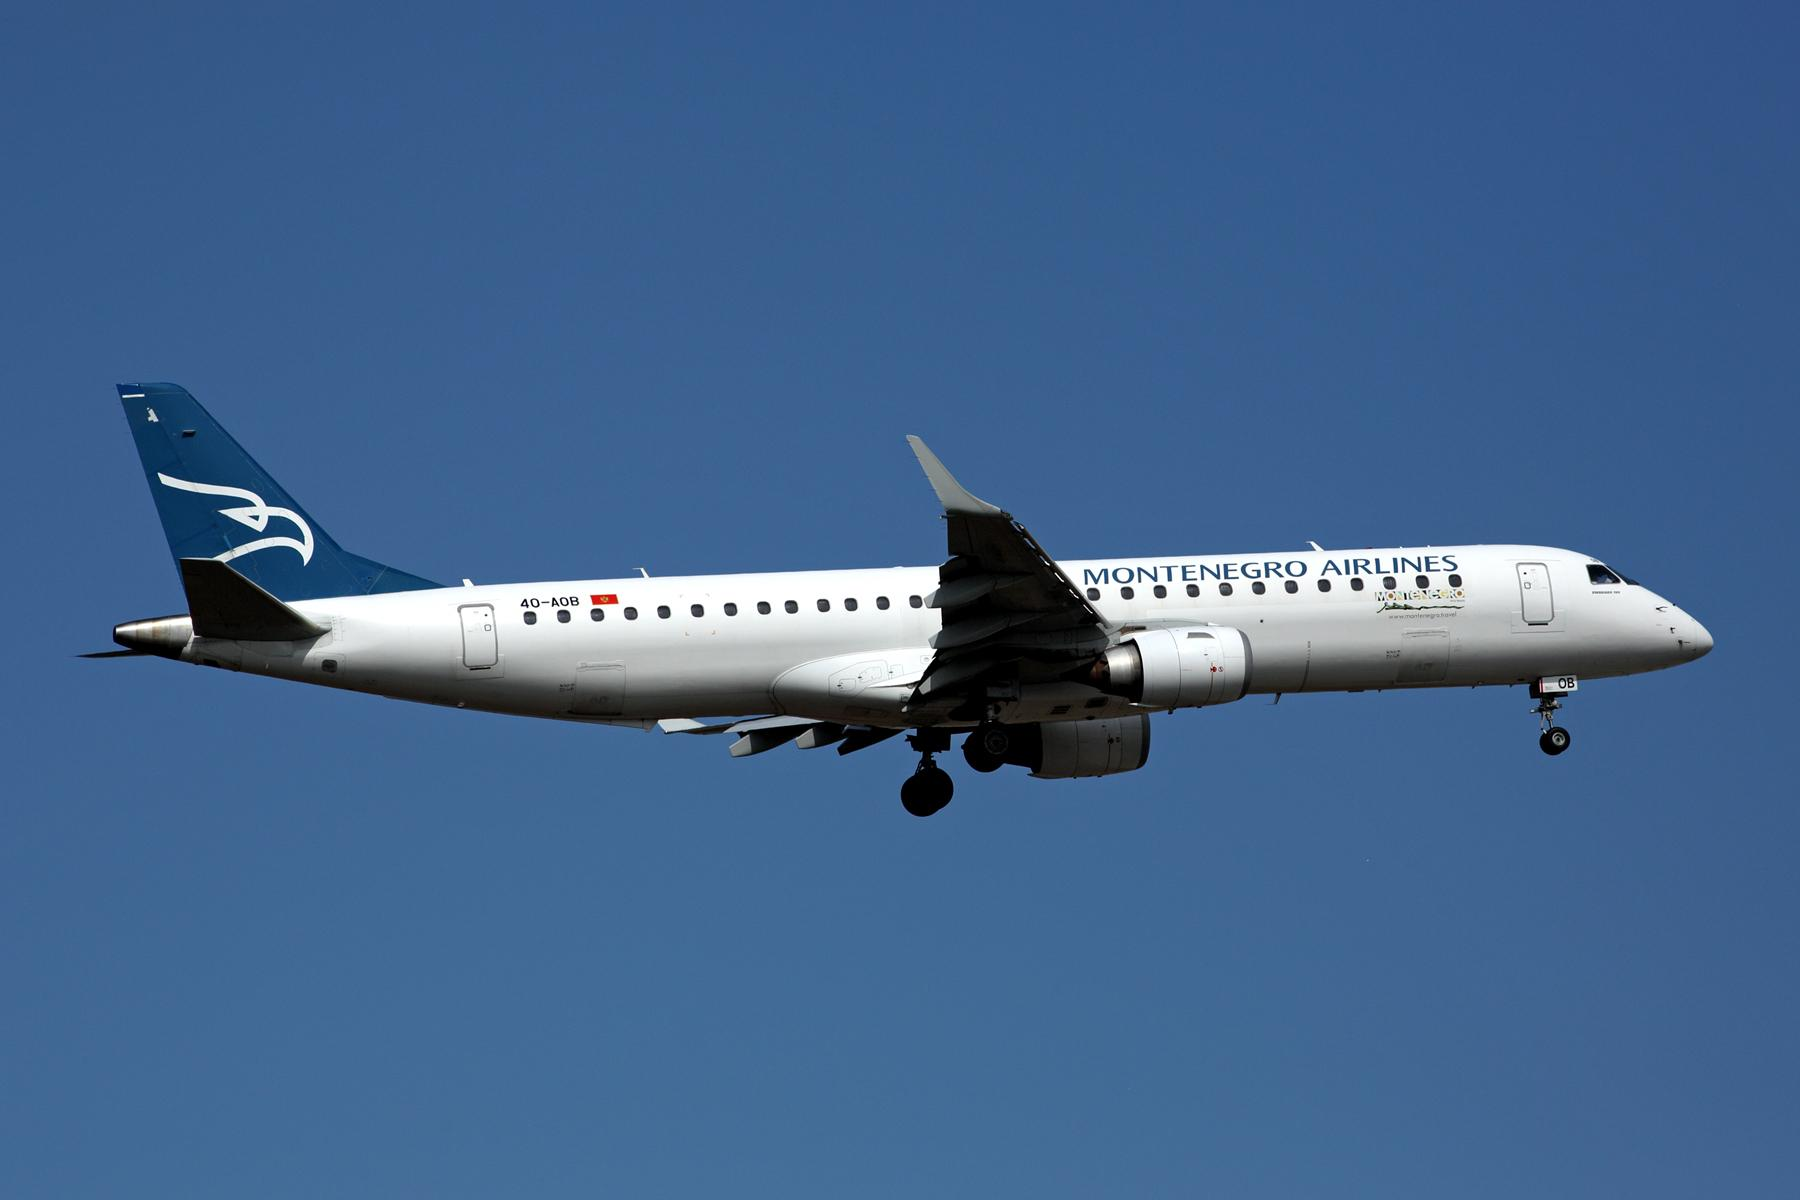 Montenegro Airlines Embraer 190